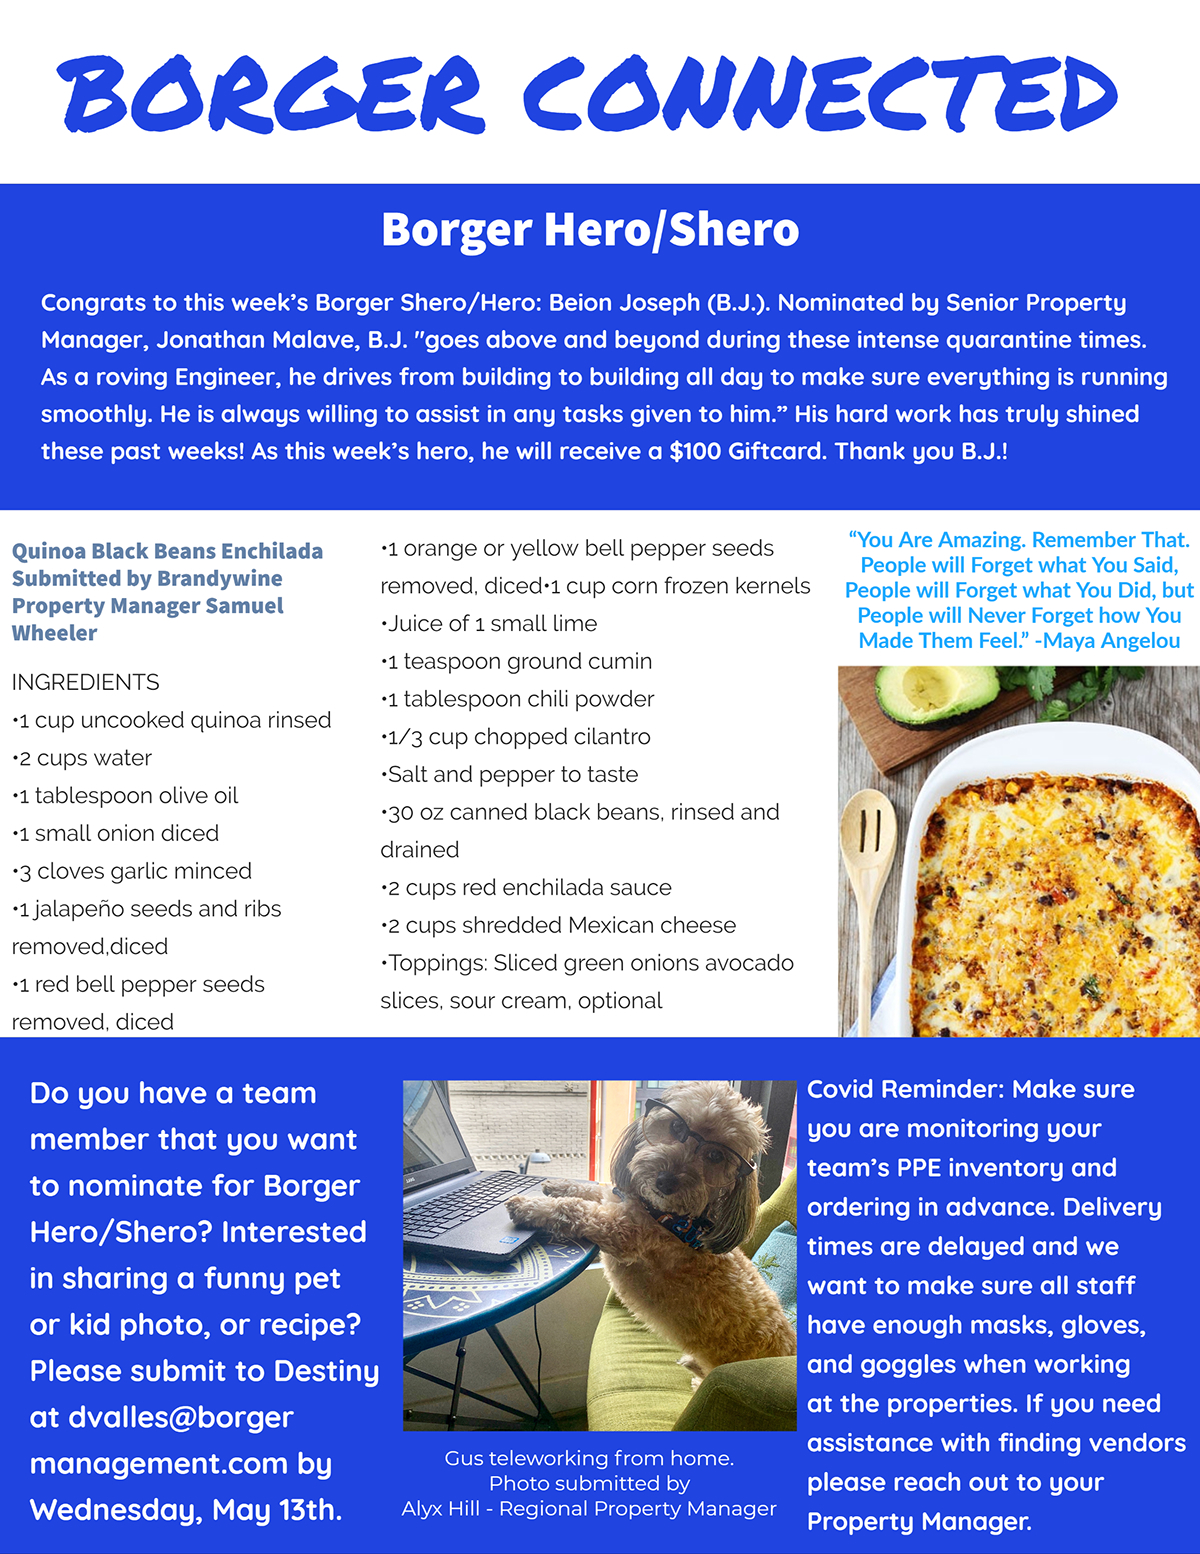 """Borger Connected Borger Connected Borger Hero/Shero Do you have a team member that you want to nominate for Borger Hero/Shero? Interested in sharing a funny pet or kid photo, or recipe? Please submit to Destiny at dvalles@borger management.com by Wednesday, May 13th. Covid Reminder: Make sure you are monitoring your team's PPE inventory and ordering in advance. Delivery times are delayed and we want to make sure all staff have enough masks, gloves, and goggles when working at the properties. If you need assistance with finding vendors please reach out to your Property Manager. Congrats to this week's Borger Shero/Hero: Beion Joseph (B.J.). Nominated by Senior Property Manager, Jonathan Malave, B.J. """"goes above and beyond during these intense quarantine times. As a roving Engineer, he drives from building to building all day to make sure everything is running smoothly. He is always willing to assist in any tasks given to him."""" His hard work has truly shined these past weeks! As this week's hero, he will receive a $100 Giftcard. Thank you B.J.! •1 orange or yellow bell pepper seeds removed, diced•1 cup corn frozen kernels •Juice of 1 small lime •1 teaspoon ground cumin •1 tablespoon chili powder •1/3 cup chopped cilantro •Salt and pepper to taste •30 oz canned black beans, rinsed and drained •2 cups red enchilada sauce •2 cups shredded Mexican cheese •Toppings: Sliced green onions avocado slices, sour cream, optional Quinoa Black Beans Enchilada Submitted by Brandywine Property Manager Samuel Wheeler INGREDIENTS •1 cup uncooked quinoa rinsed •2 cups water •1 tablespoon olive oil •1 small onion diced •3 cloves garlic minced •1 jalapeño seeds and ribs removed,diced •1 red bell pepper seeds removed, diced """"You Are Amazing. Remember That. People will Forget what You Said, People will Forget what You Did, but People will Never Forget how You Made Them Feel."""" -Maya Angelou Gus teleworking from home. Photo submitted by Alyx Hill - Regional Property Manager"""